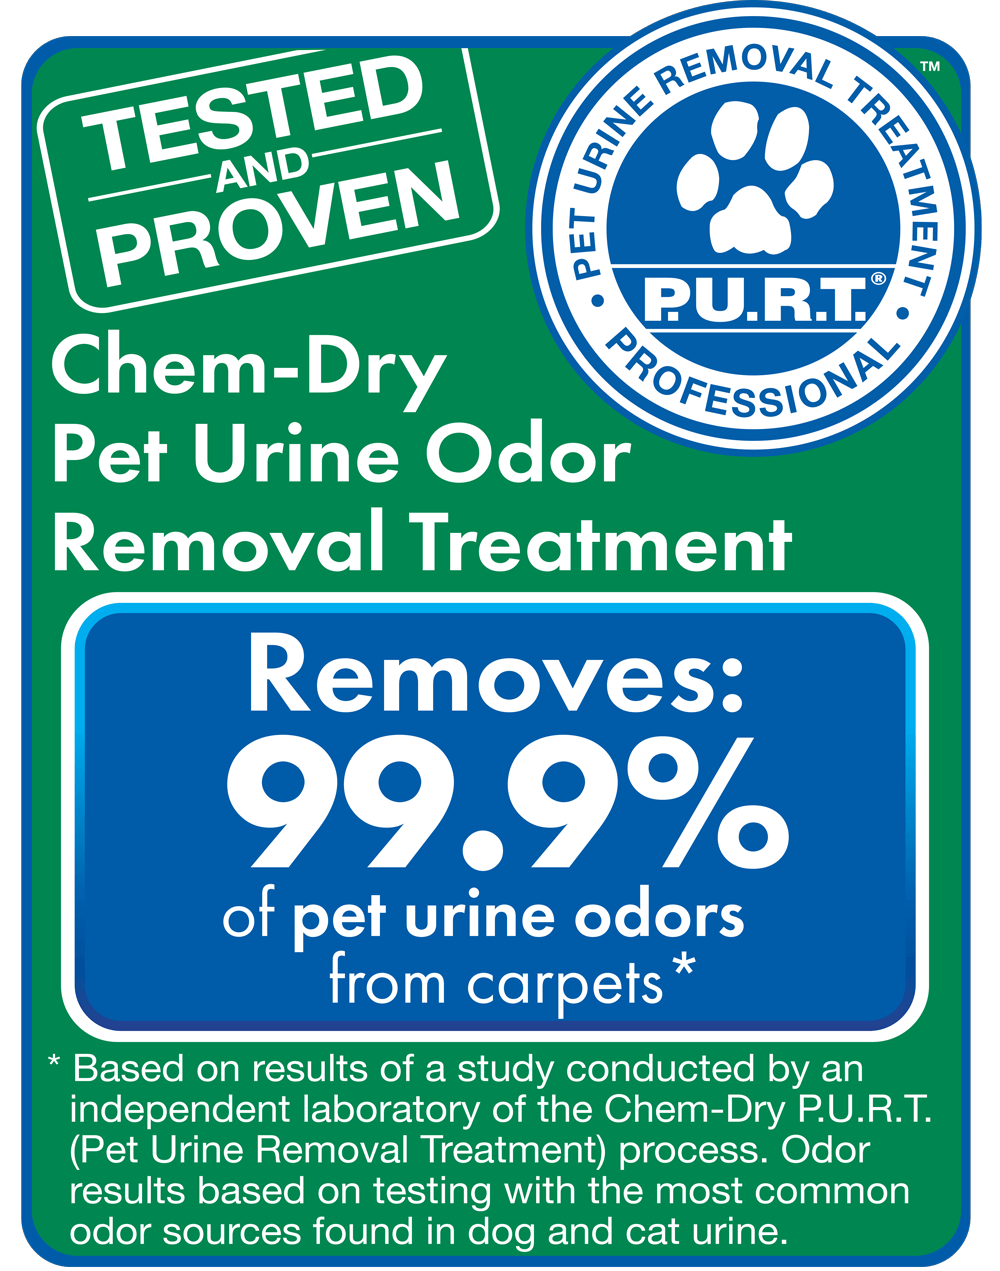 removes 99.9% of odors and 99.2% of bacteria from pet urine